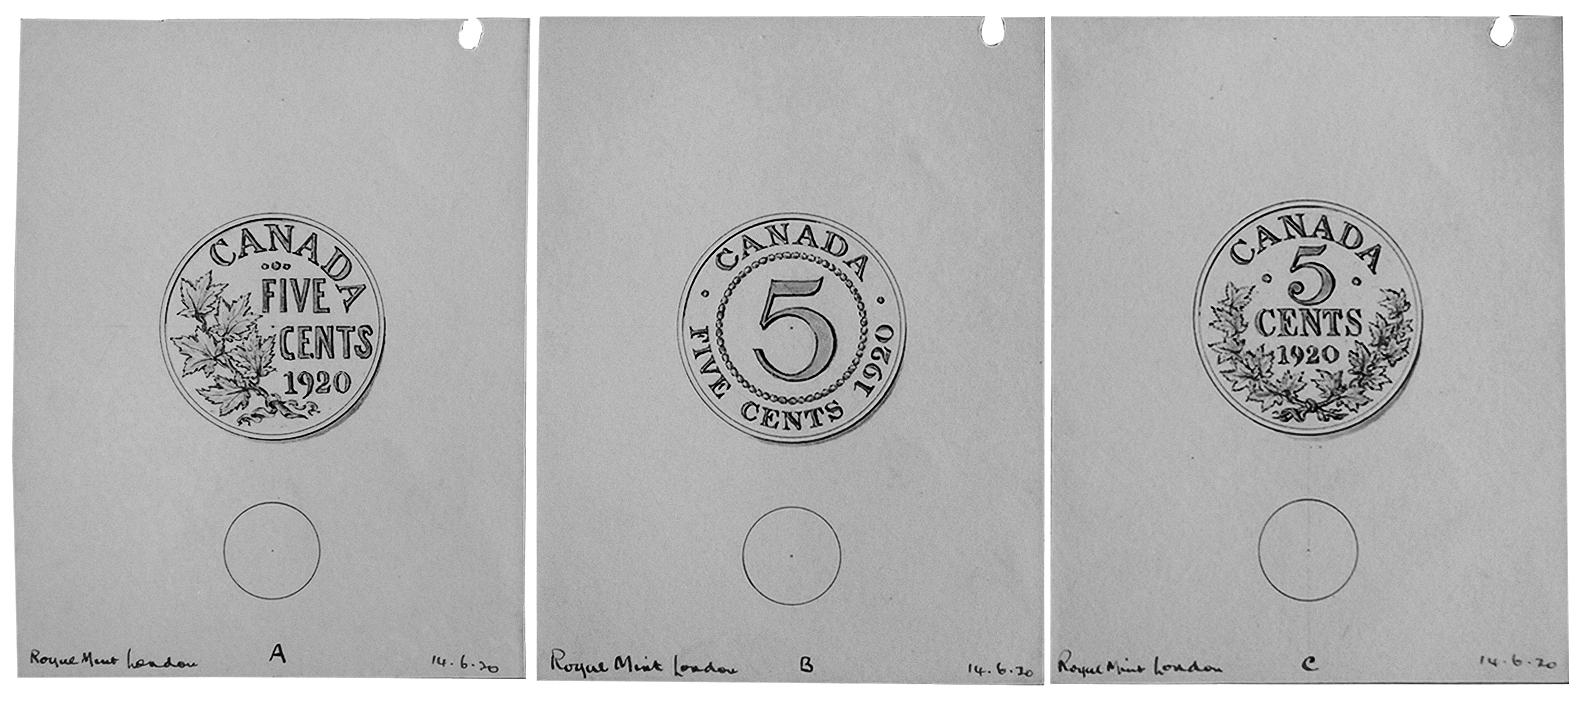 hand-drawn illustrations of old coin designs